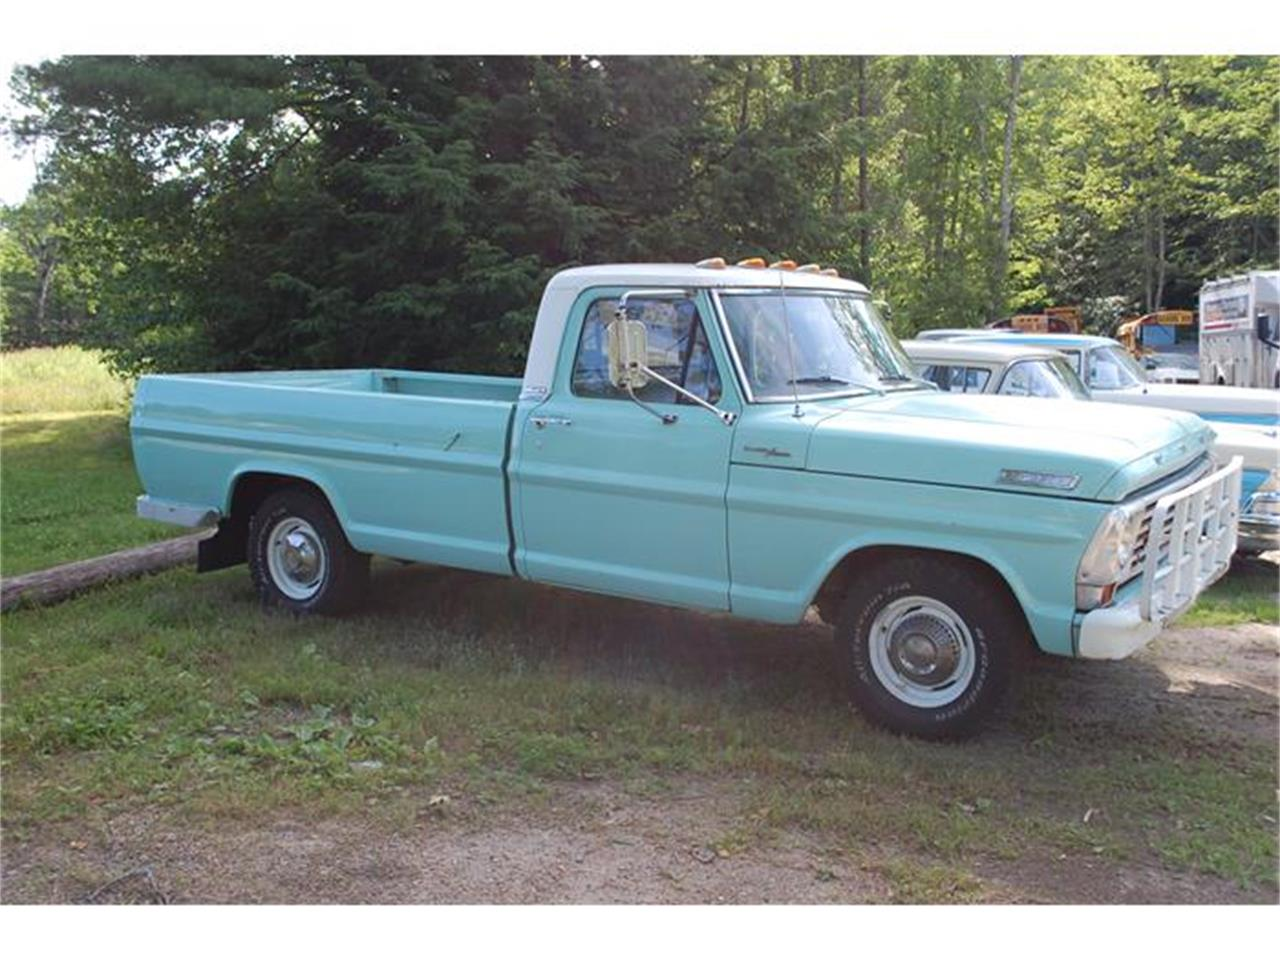 Chevy Dealers In Maine >> 1968 Checker Station Wagon for Sale | ClassicCars.com | CC ...